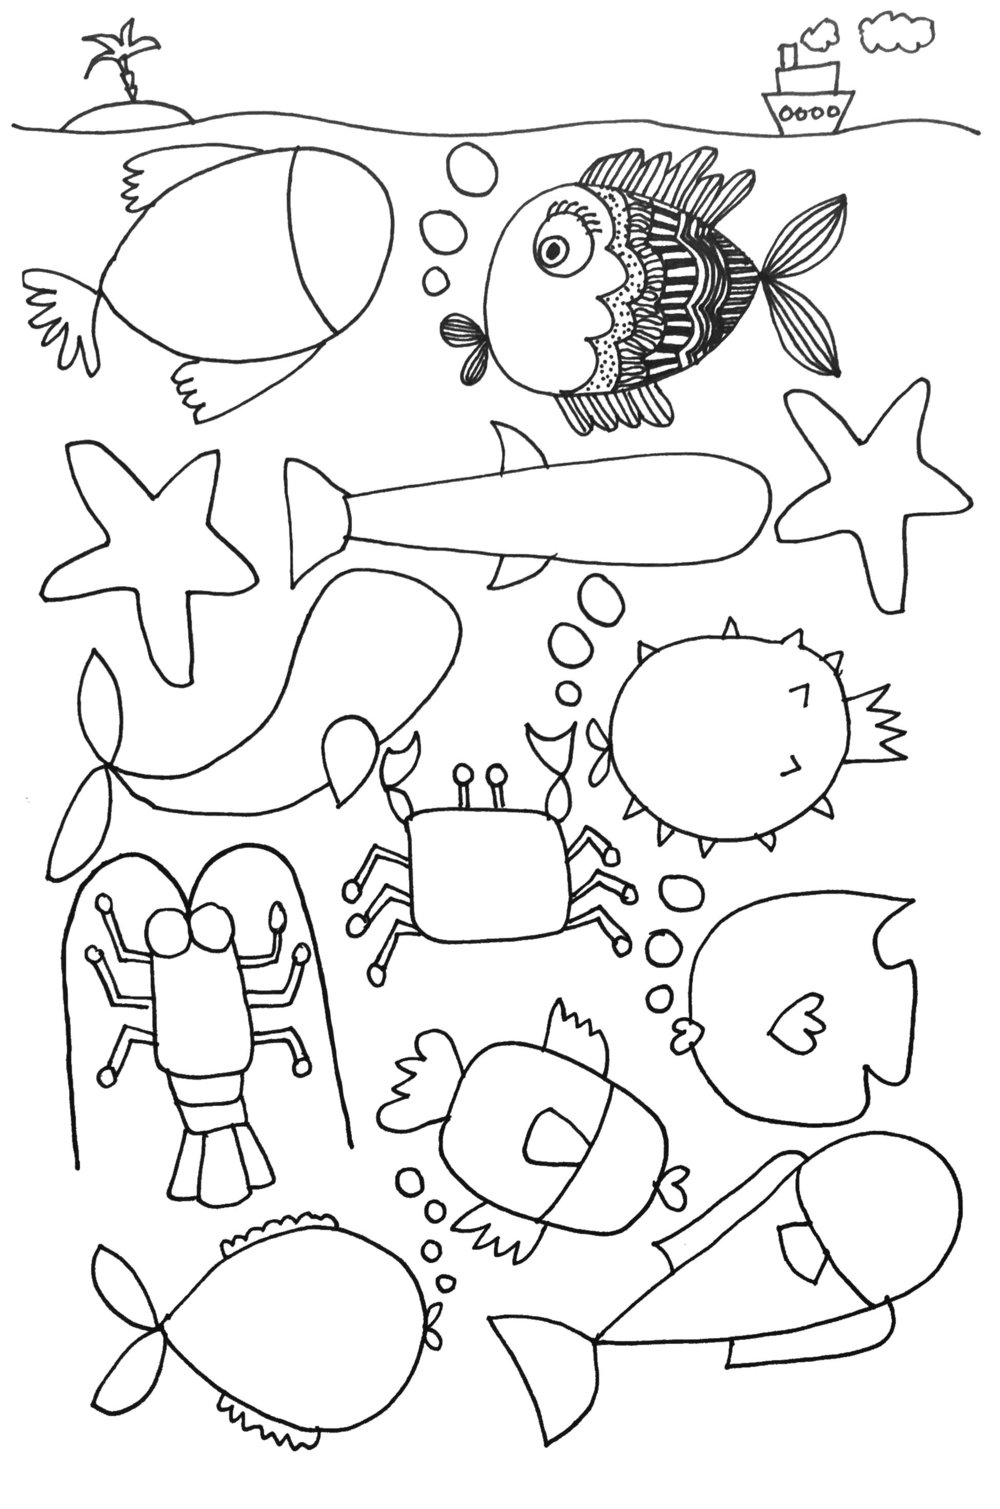 Complete the under sea doodle.